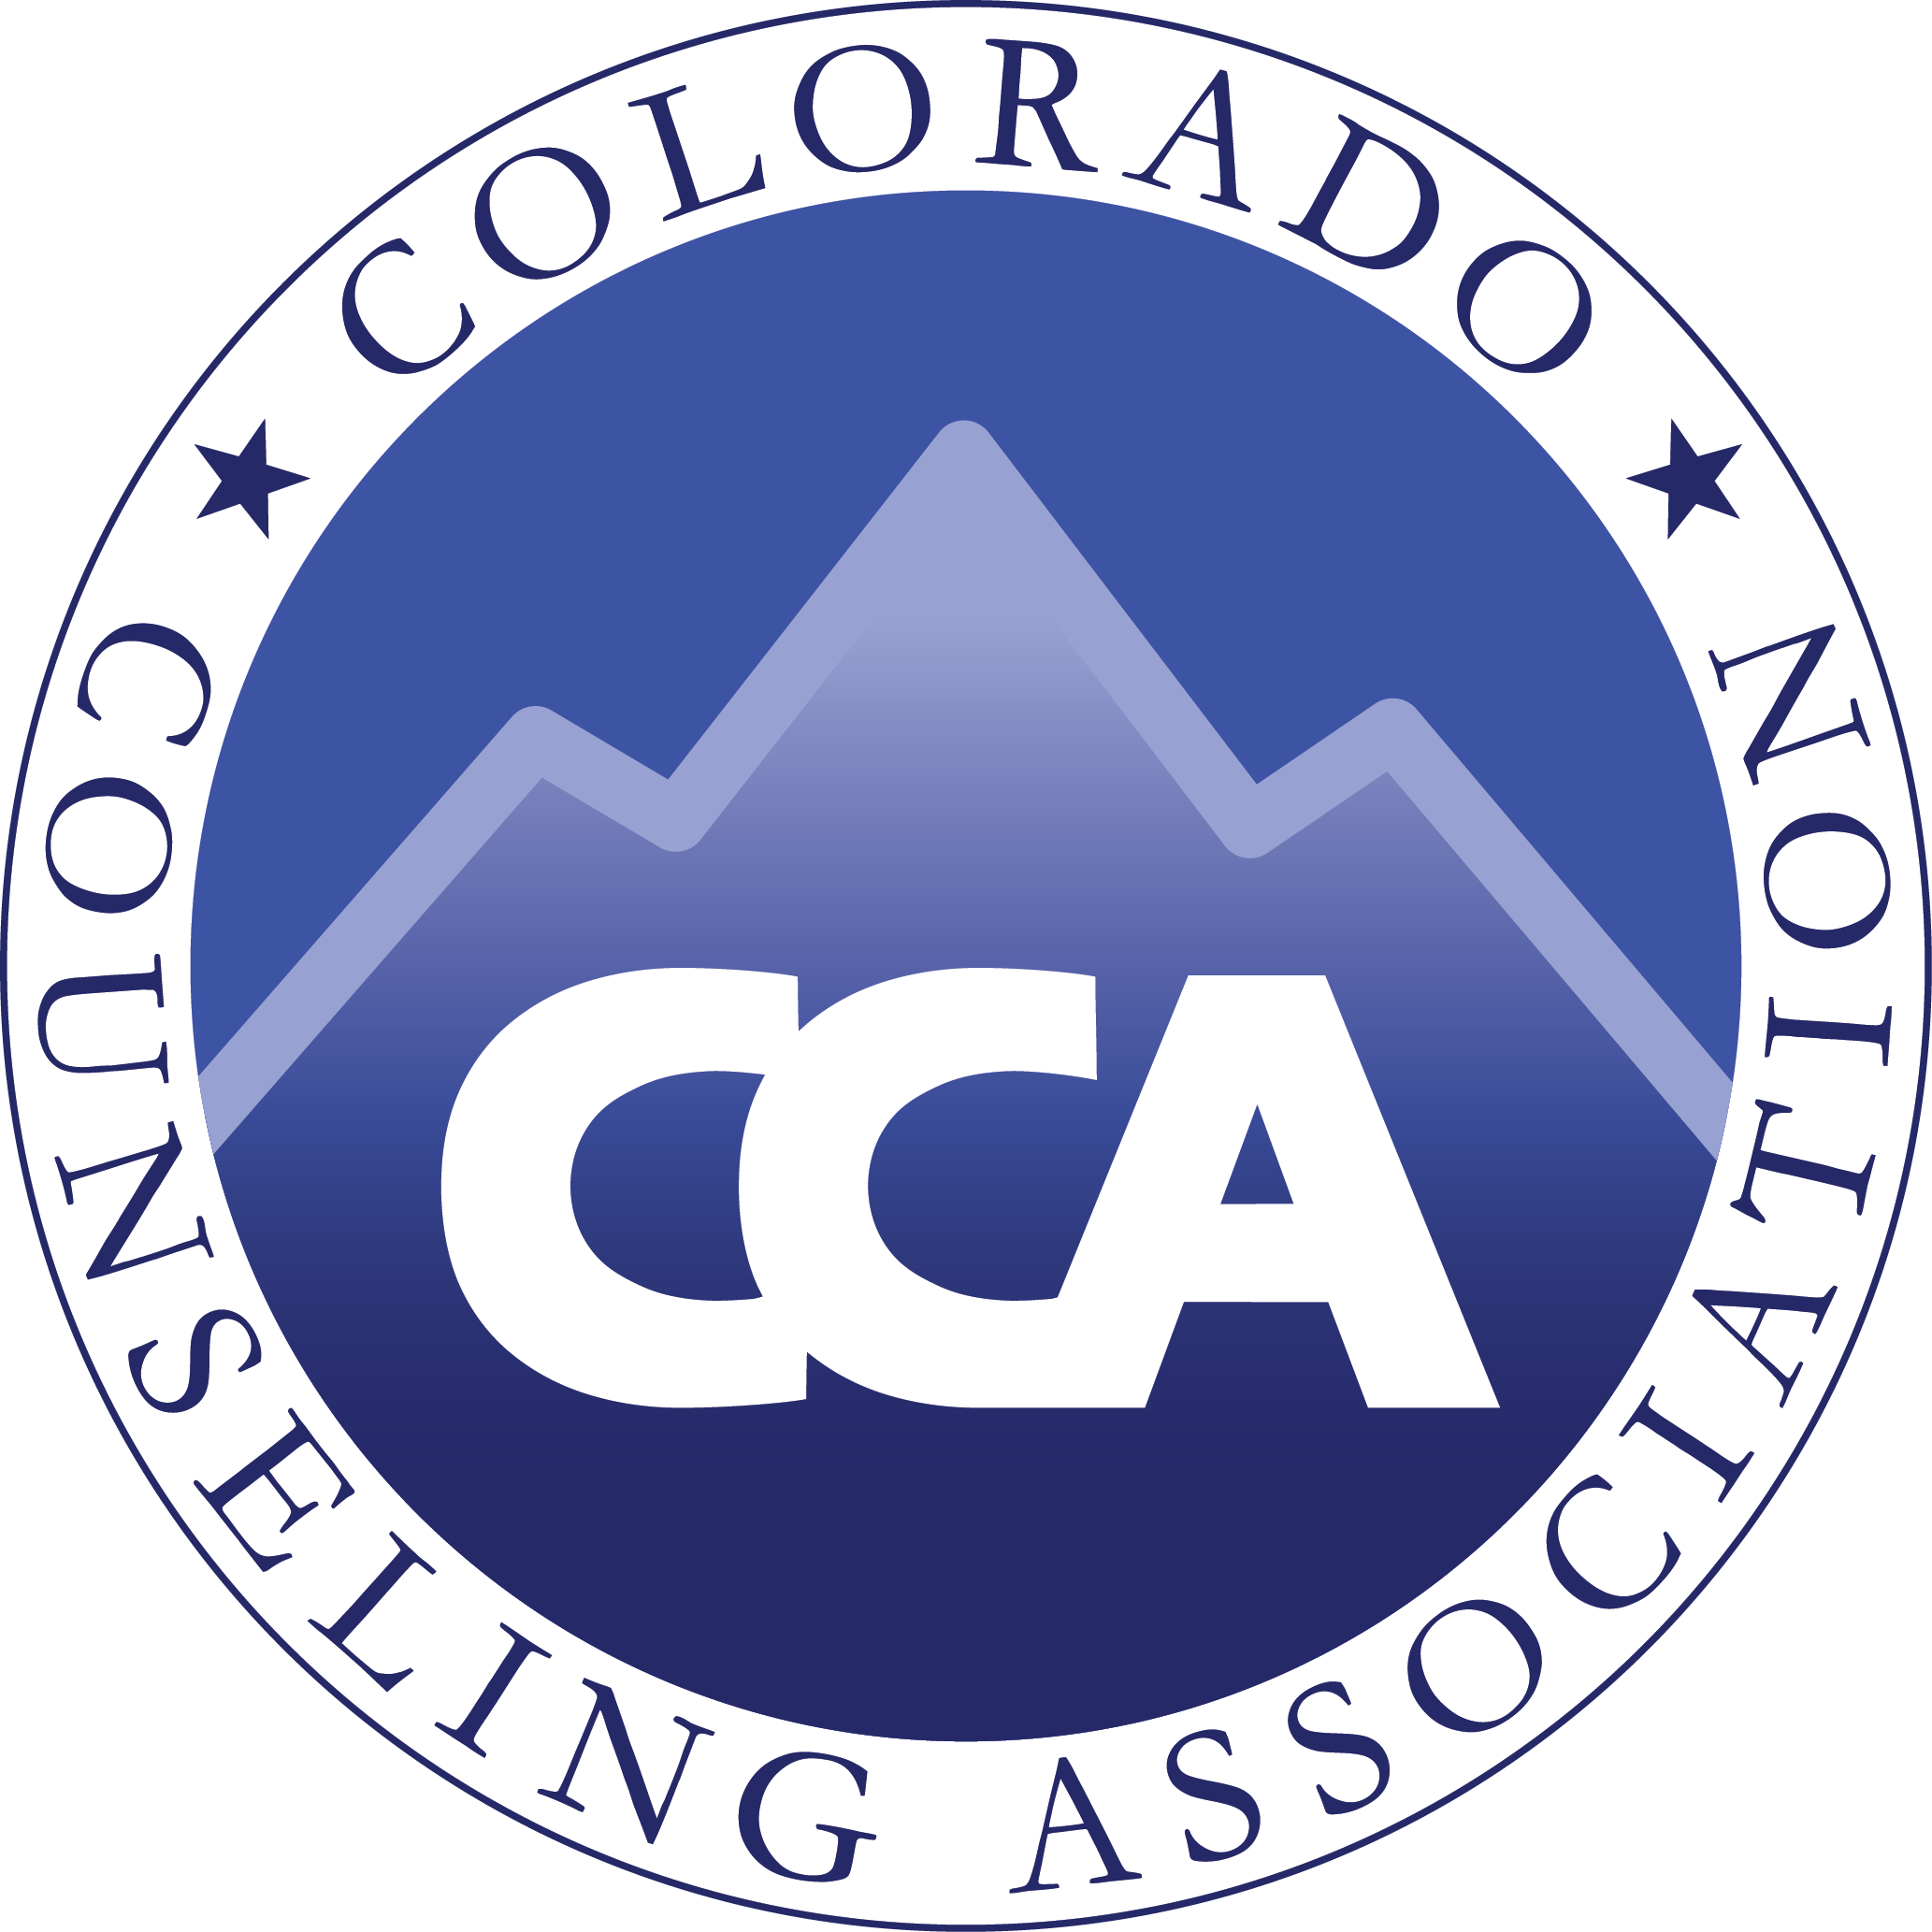 Colorado Counseling Association (CCA) Logo